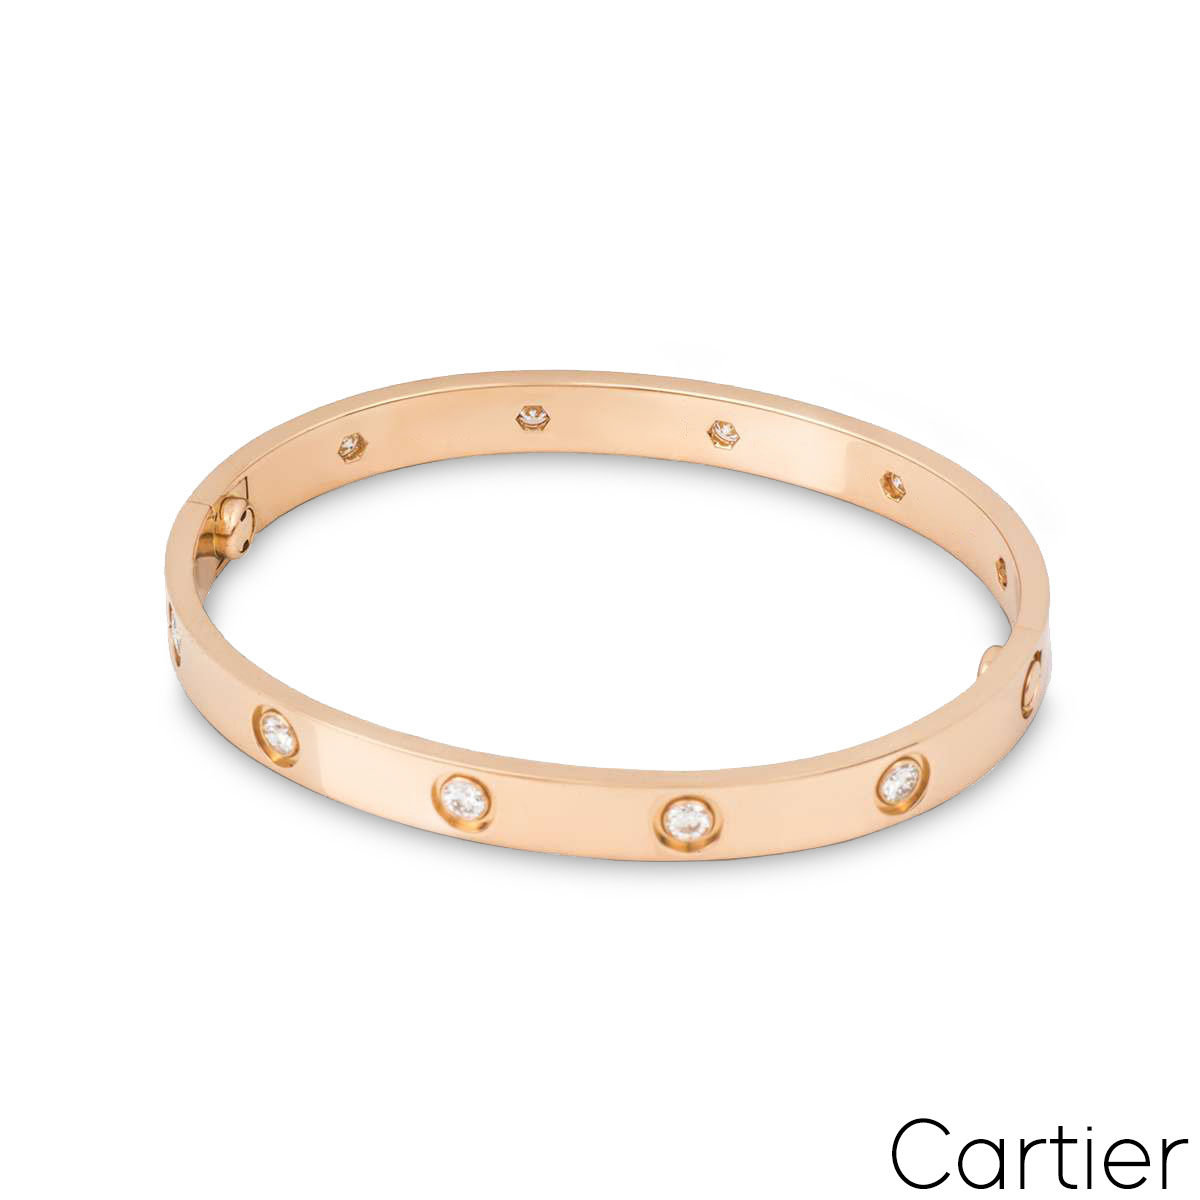 Cartier Rose Gold Full Diamond Love Bracelet Size 19 B6040619